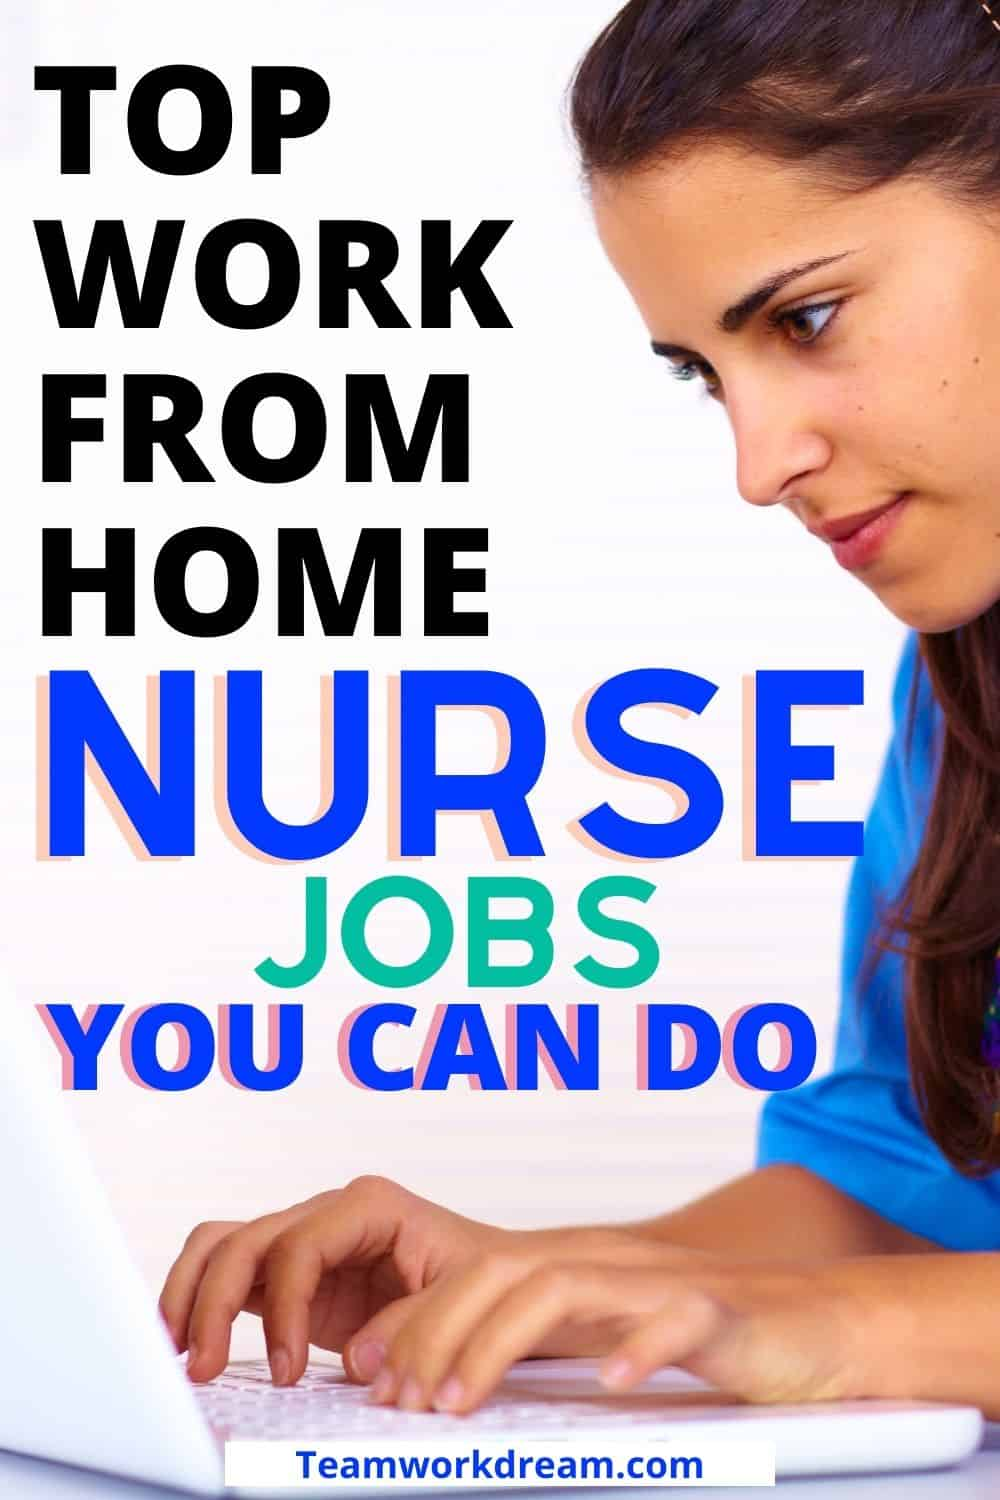 woman working as nurse at home on her laptop